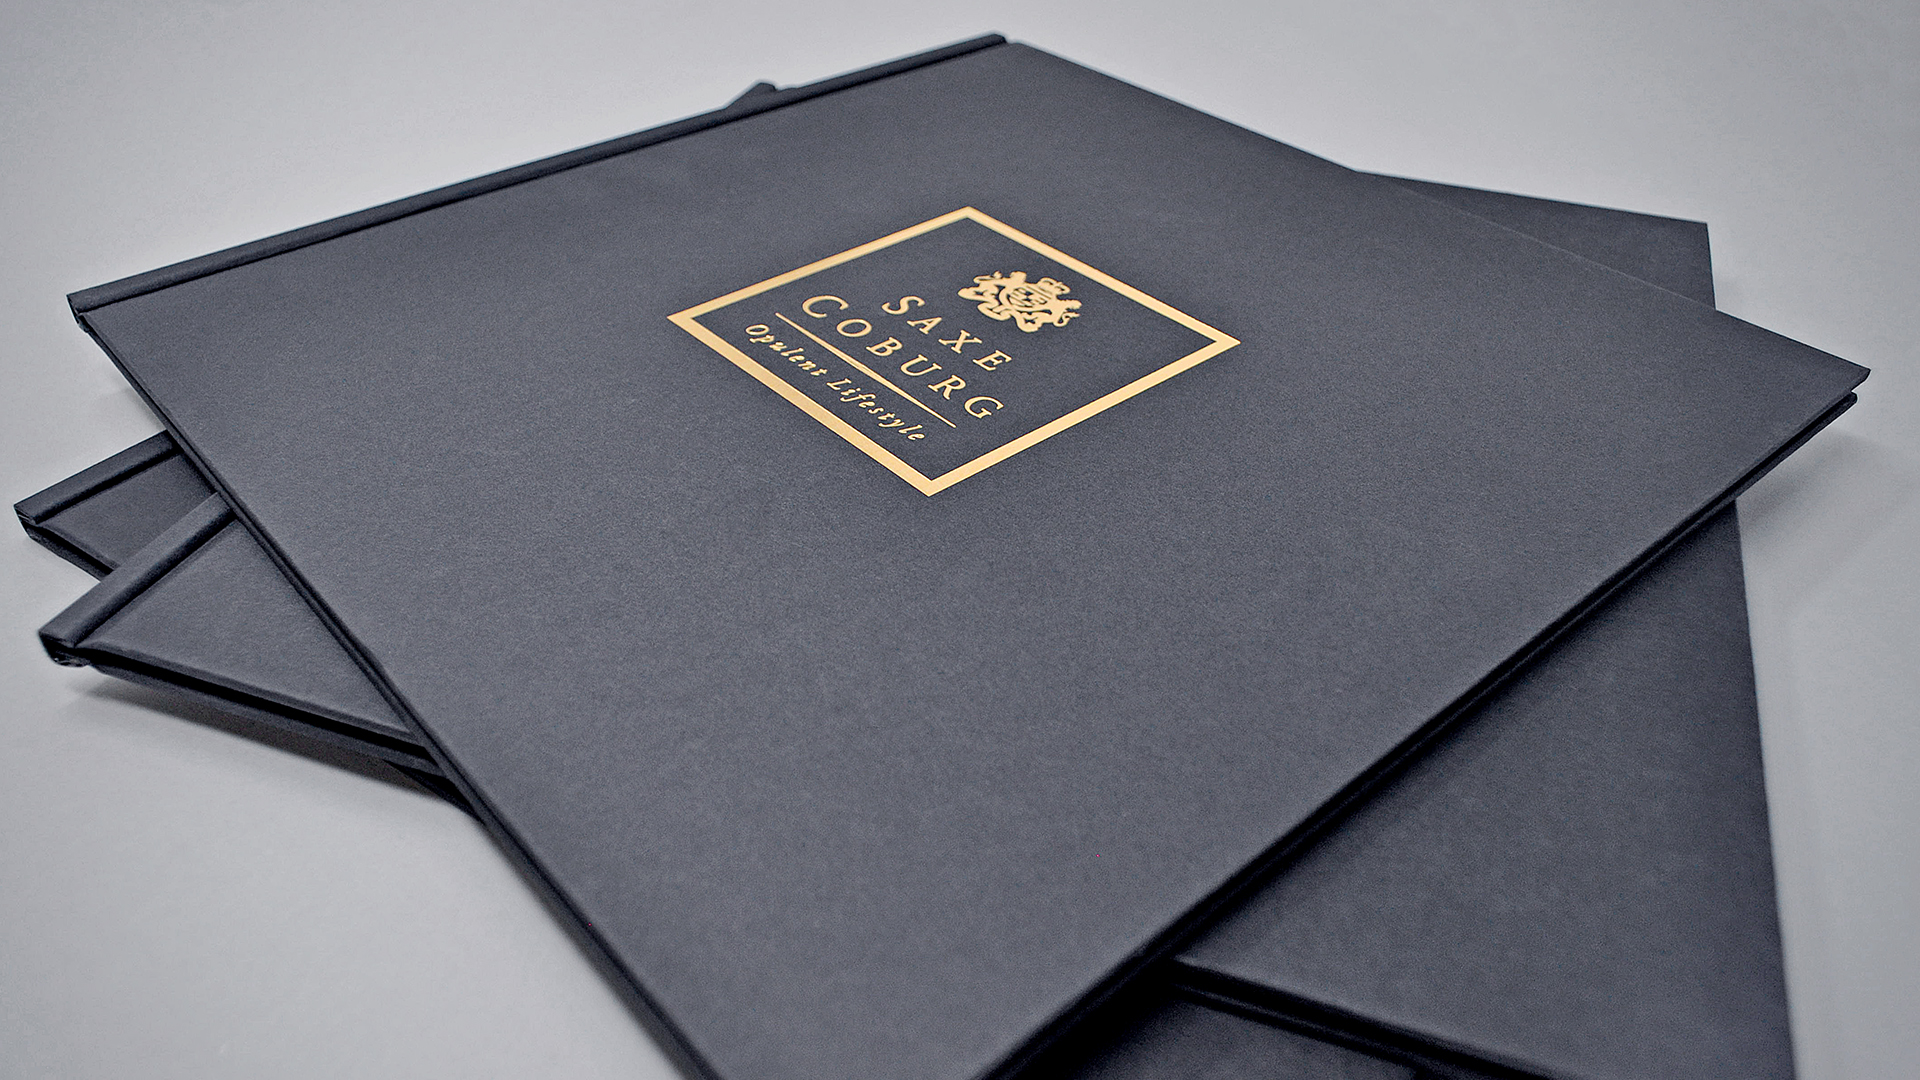 Saxe Coburg Coffee Table Book | We Are 778 Bournemouth Poole Branding Graphic Design Web Development Creative Agency